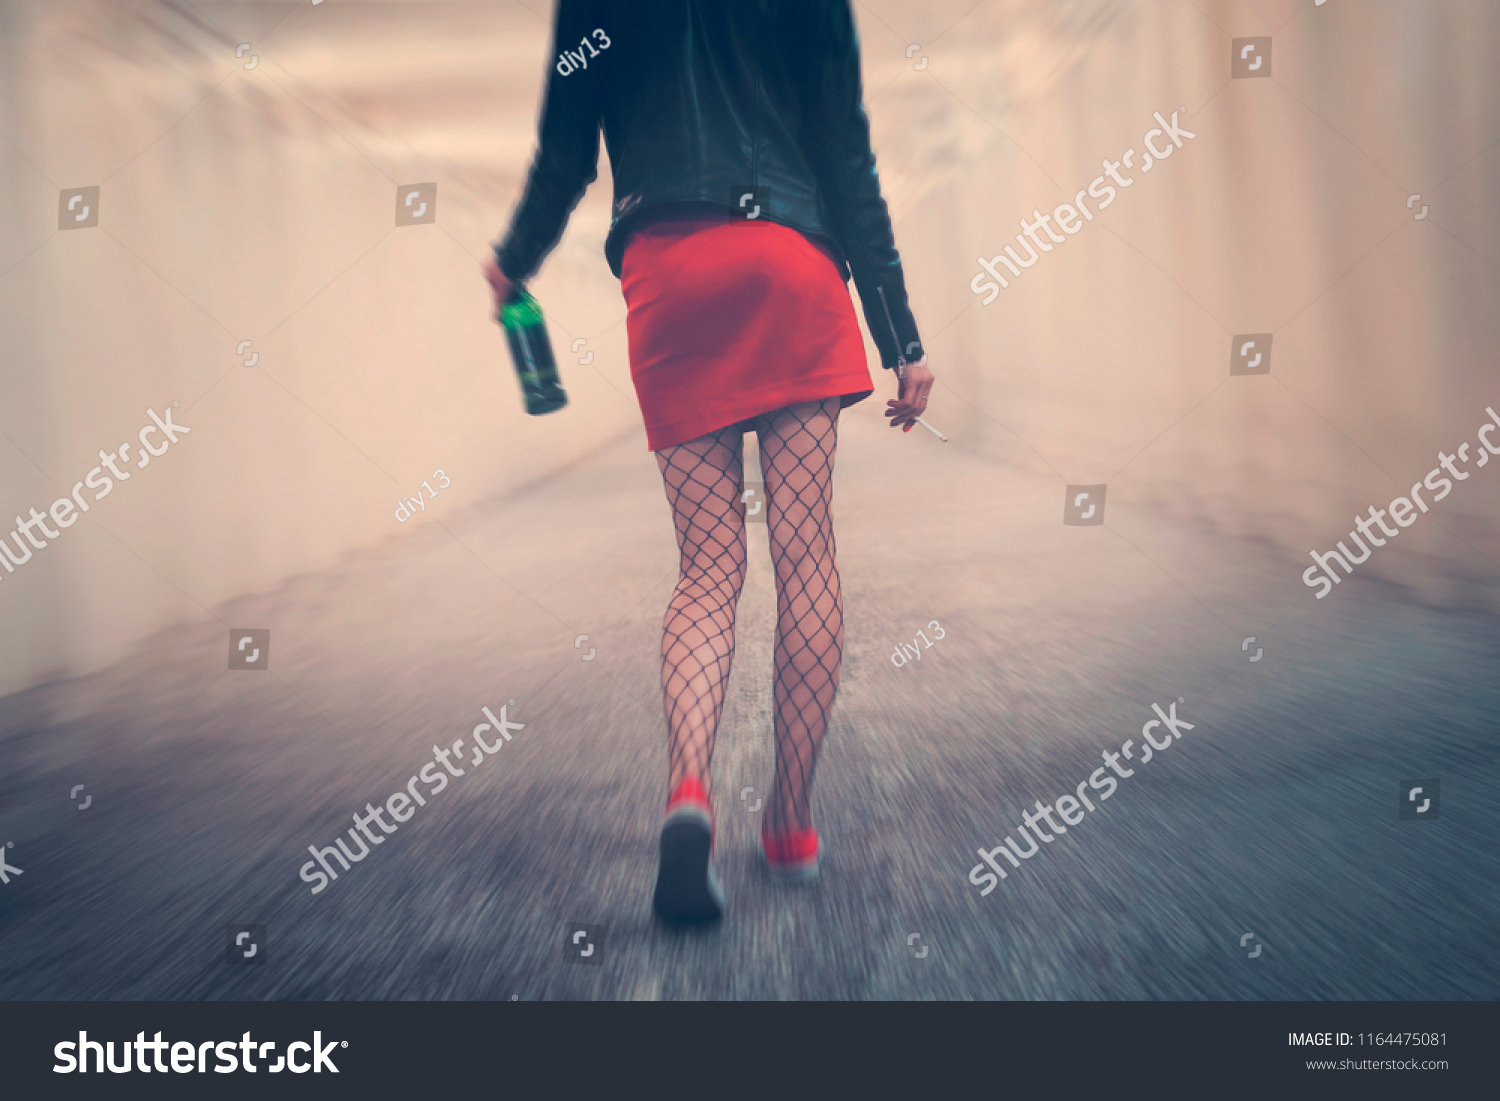 drunk woman with cigarette and bottle goes into distance along corridor  stumbling and falling. Young